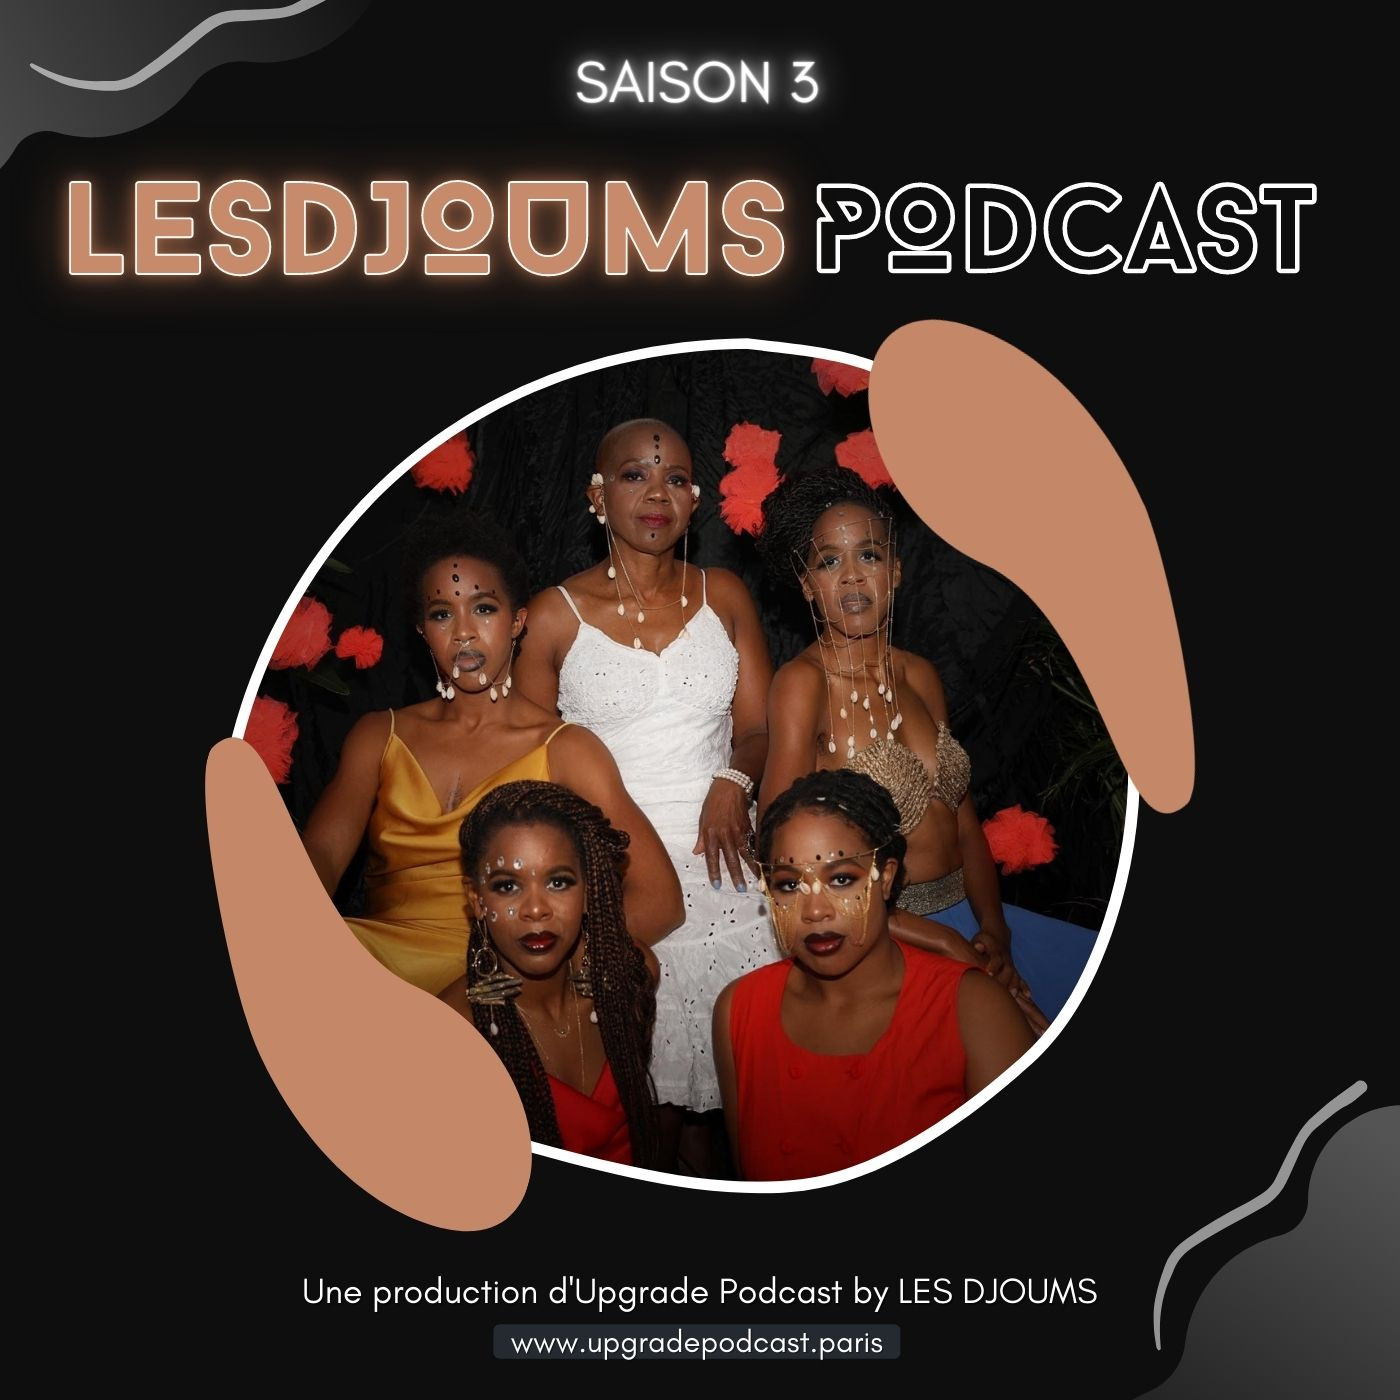 S2E8 - Les relations amoureuses